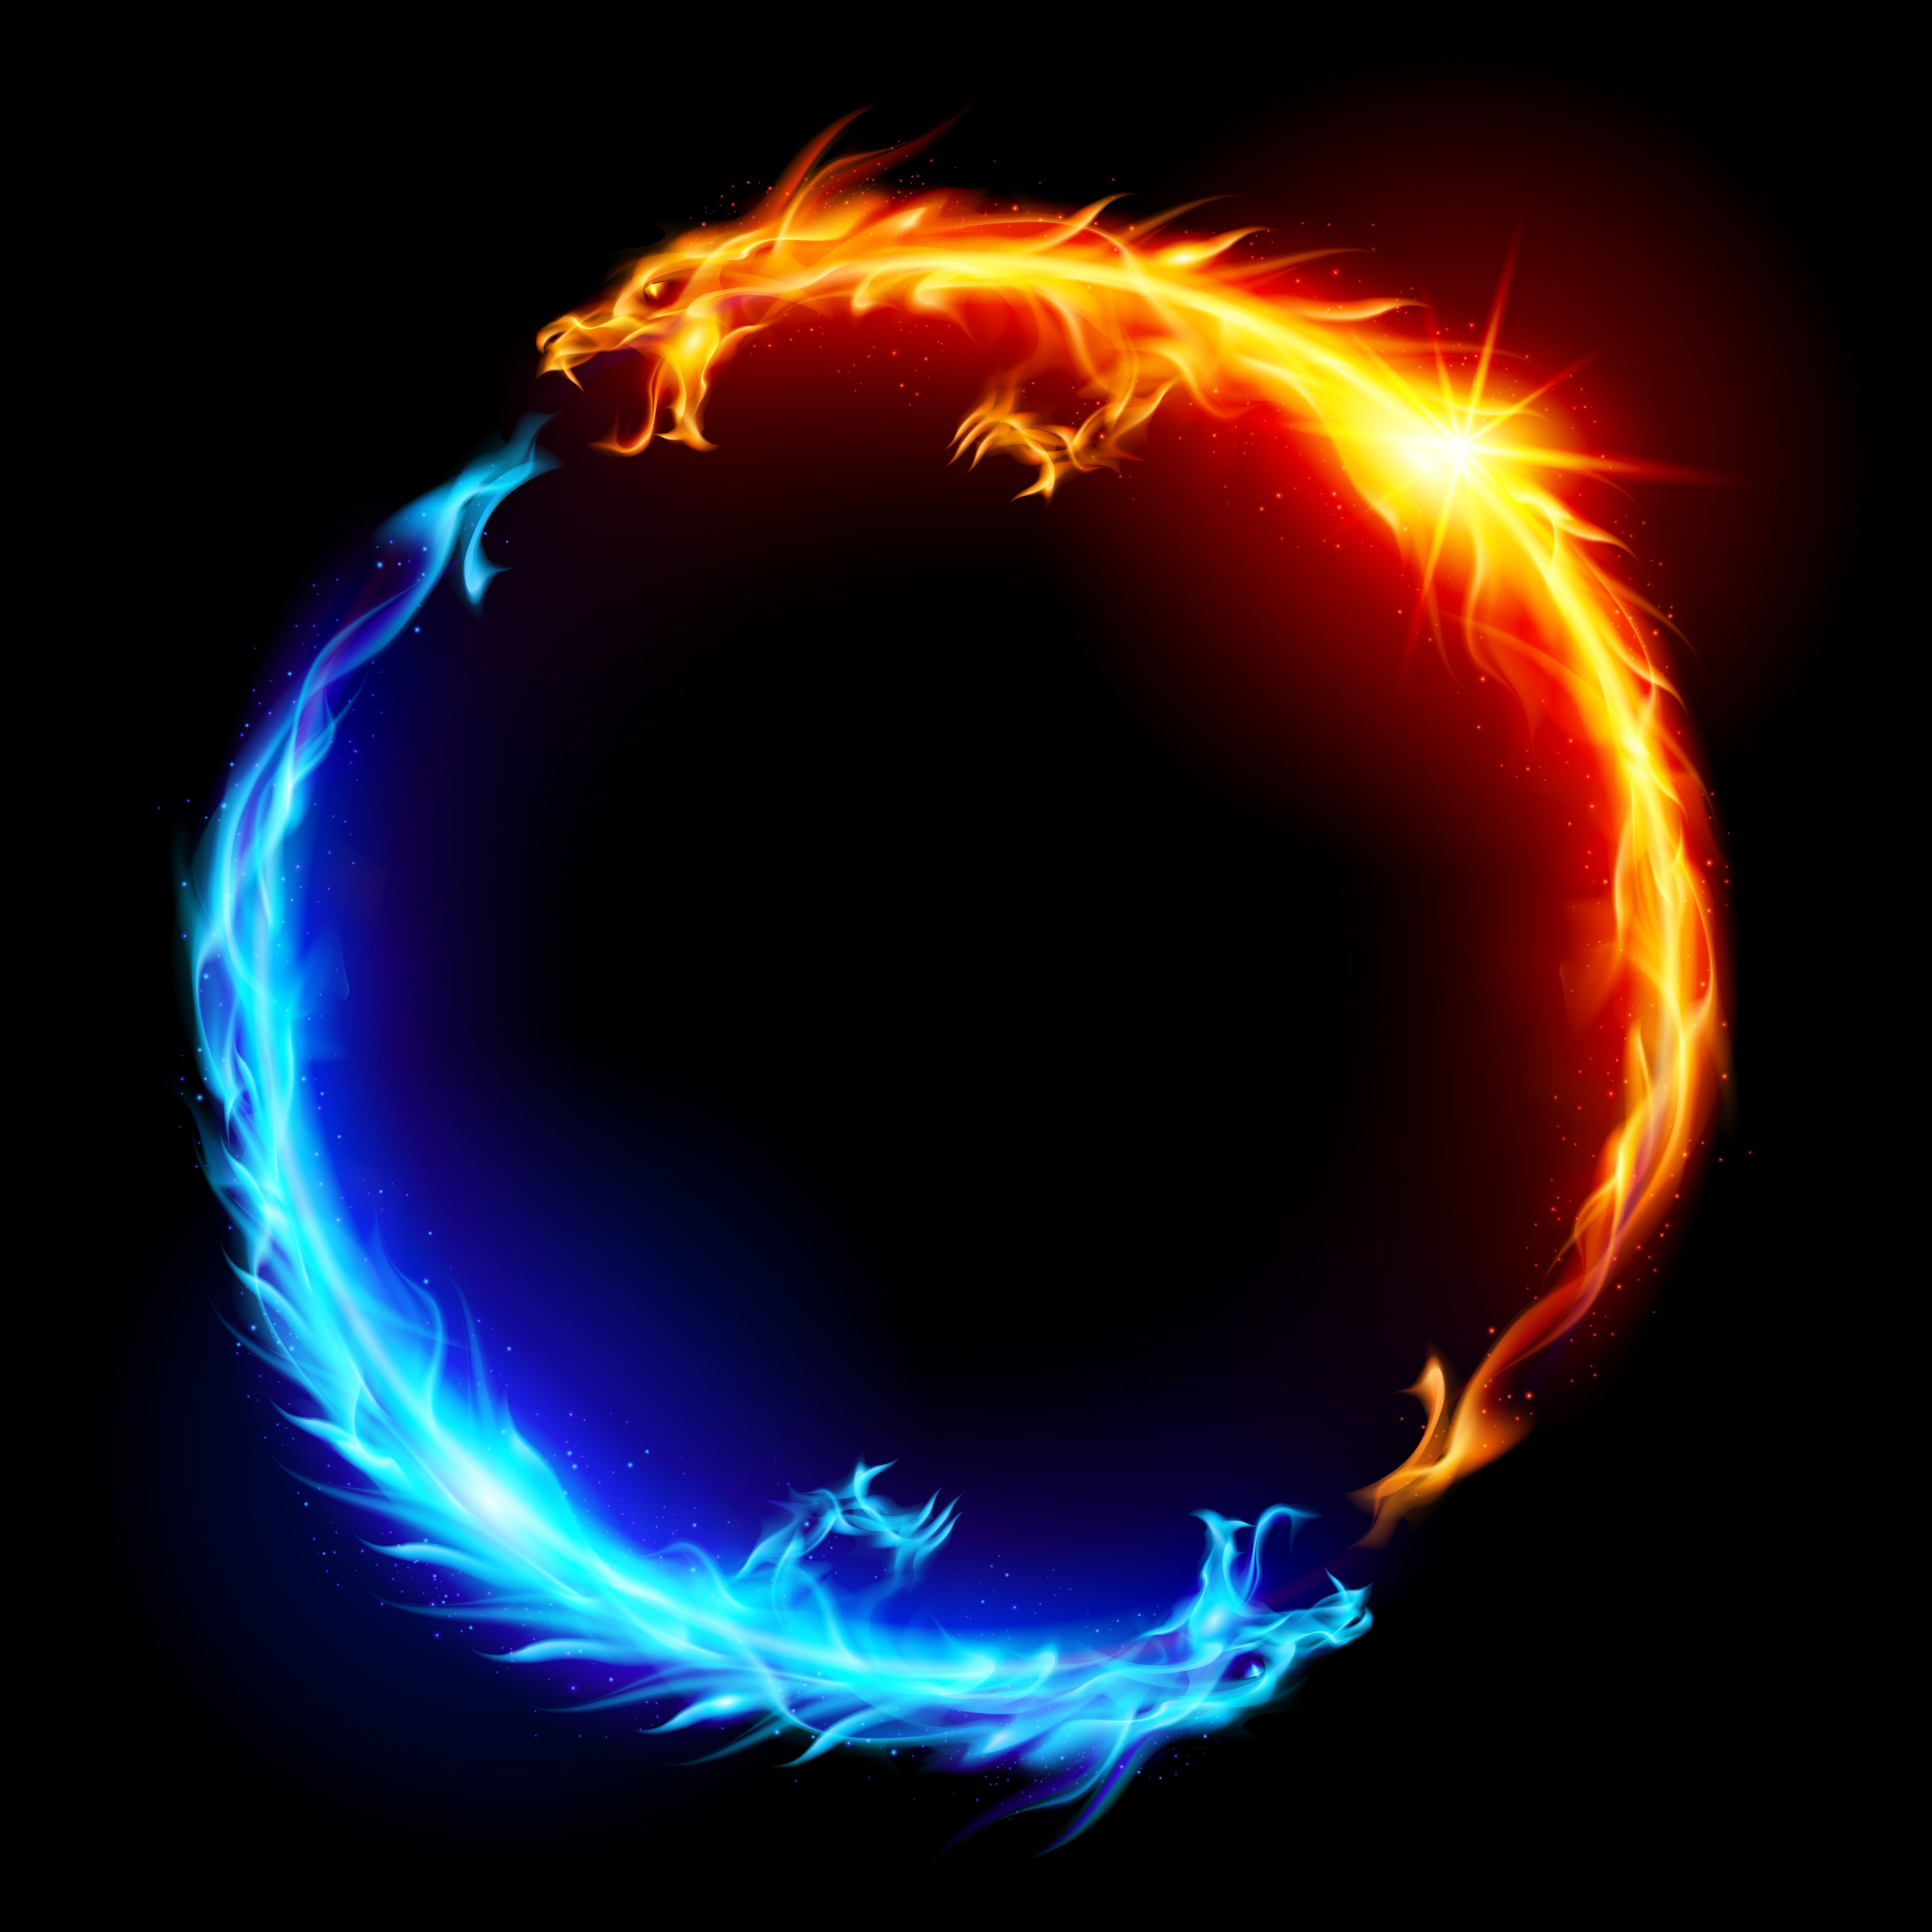 5000x5000 - Red and Blue Fire 13